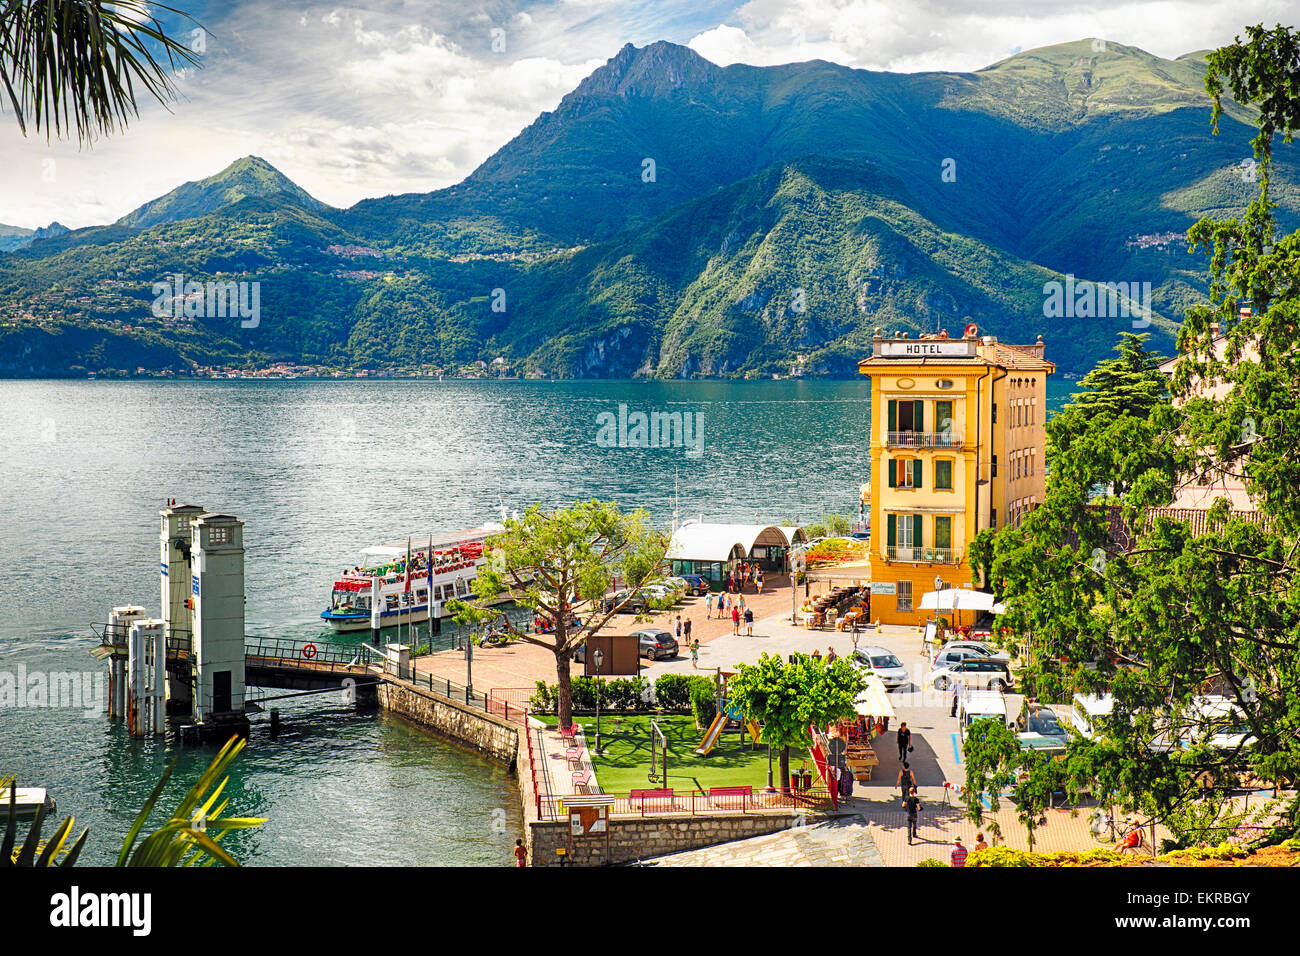 High Angle View of the Varenna Harbor on Lake Como, Lombardy, Italy - Stock Image